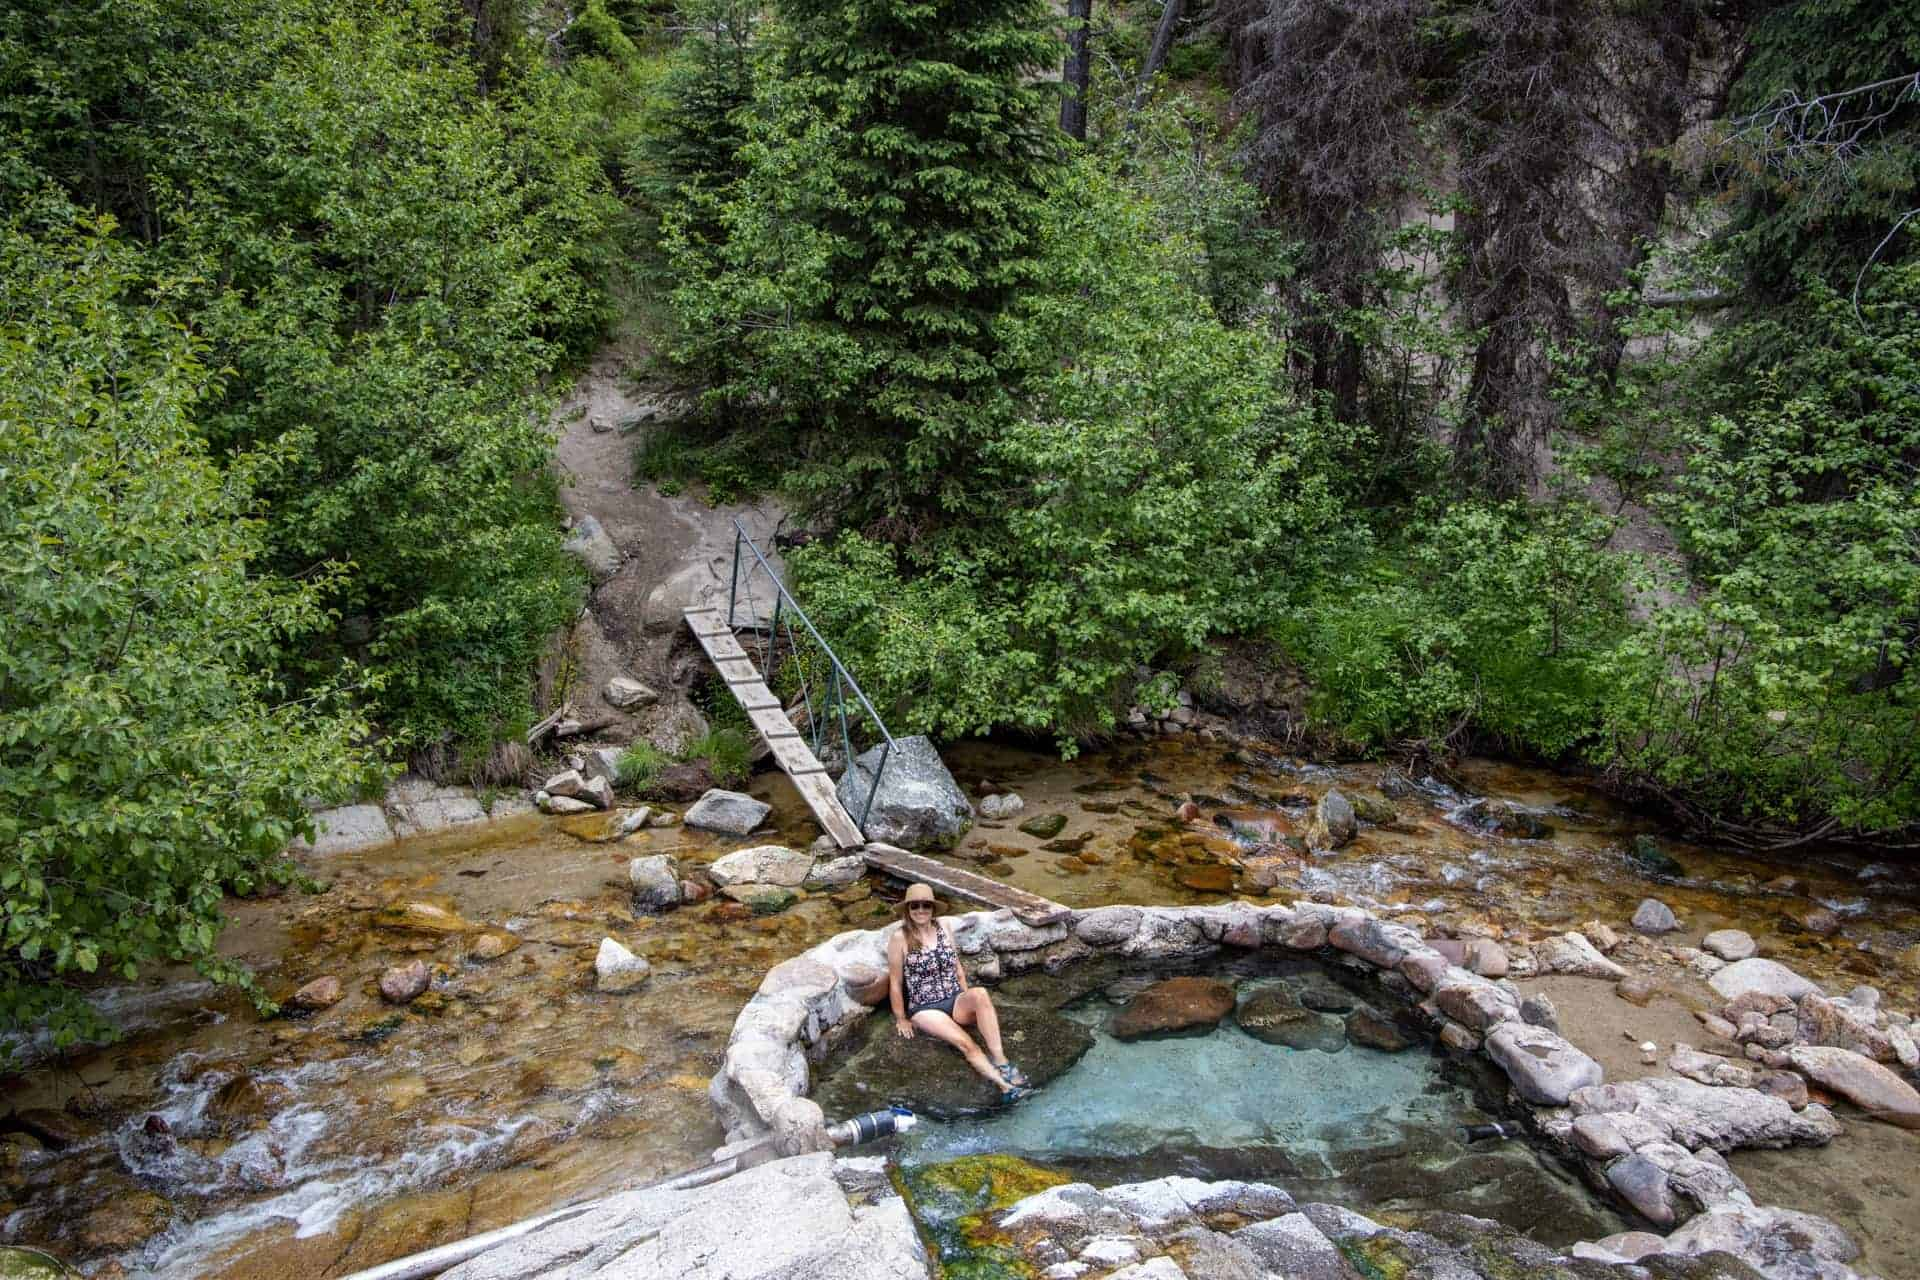 Hot Springs in Cascade Idaho // Hot springs, hiking, off-roading, biking, and more. Explore the best outdoor recreation in Cascade with this 4-day Cascade Idaho itinerary.